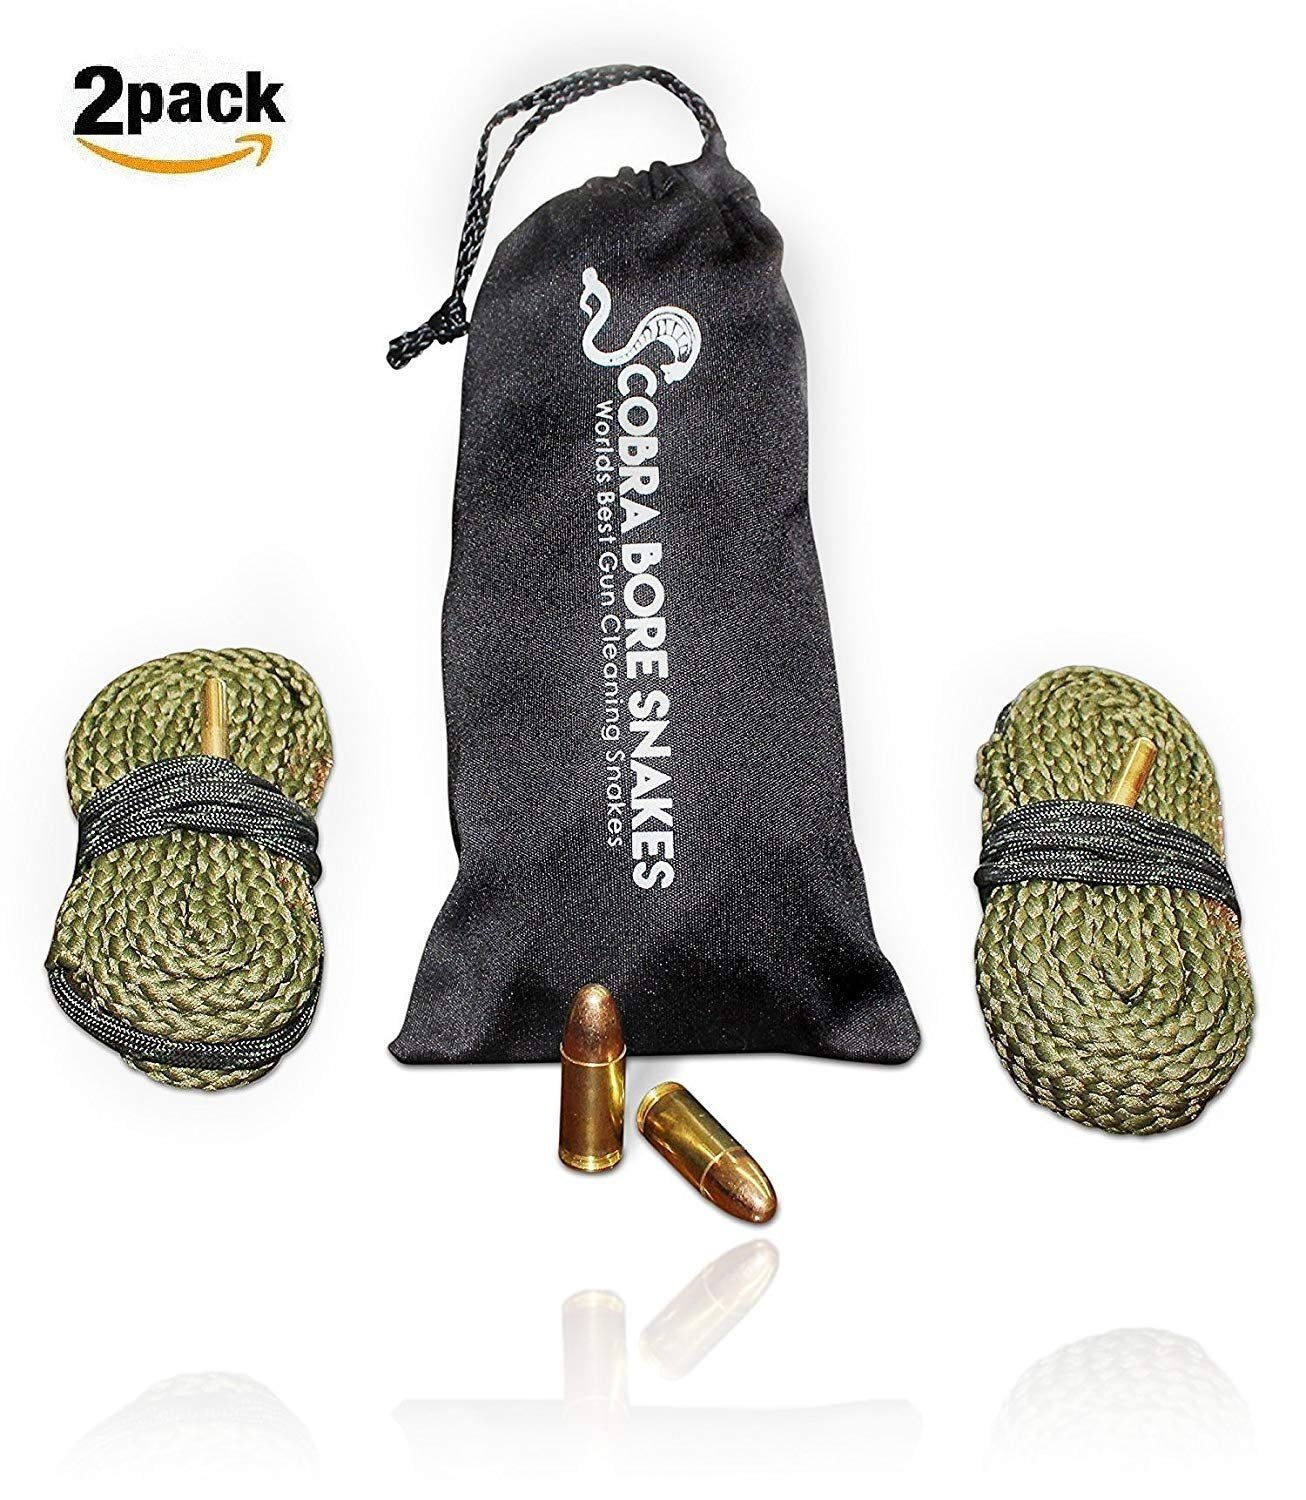 Cobra Barrel Cleaning Snake For .380 Caliber Pistols Bore Snakes Makes It Easy To Clean Your 380 Automatic Weapon